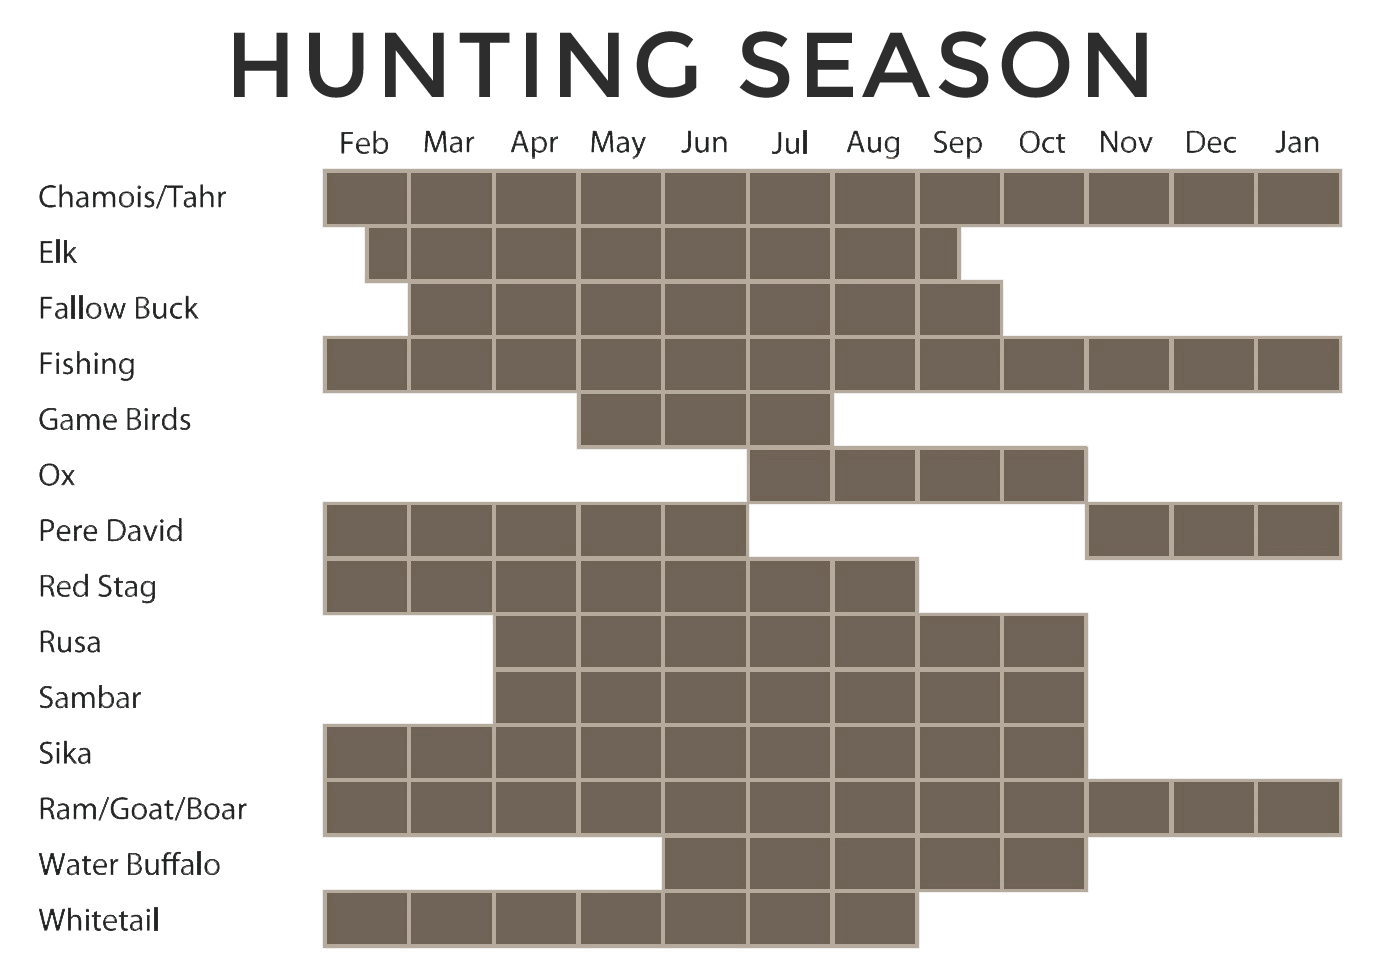 New Zealand Safaris hunting season